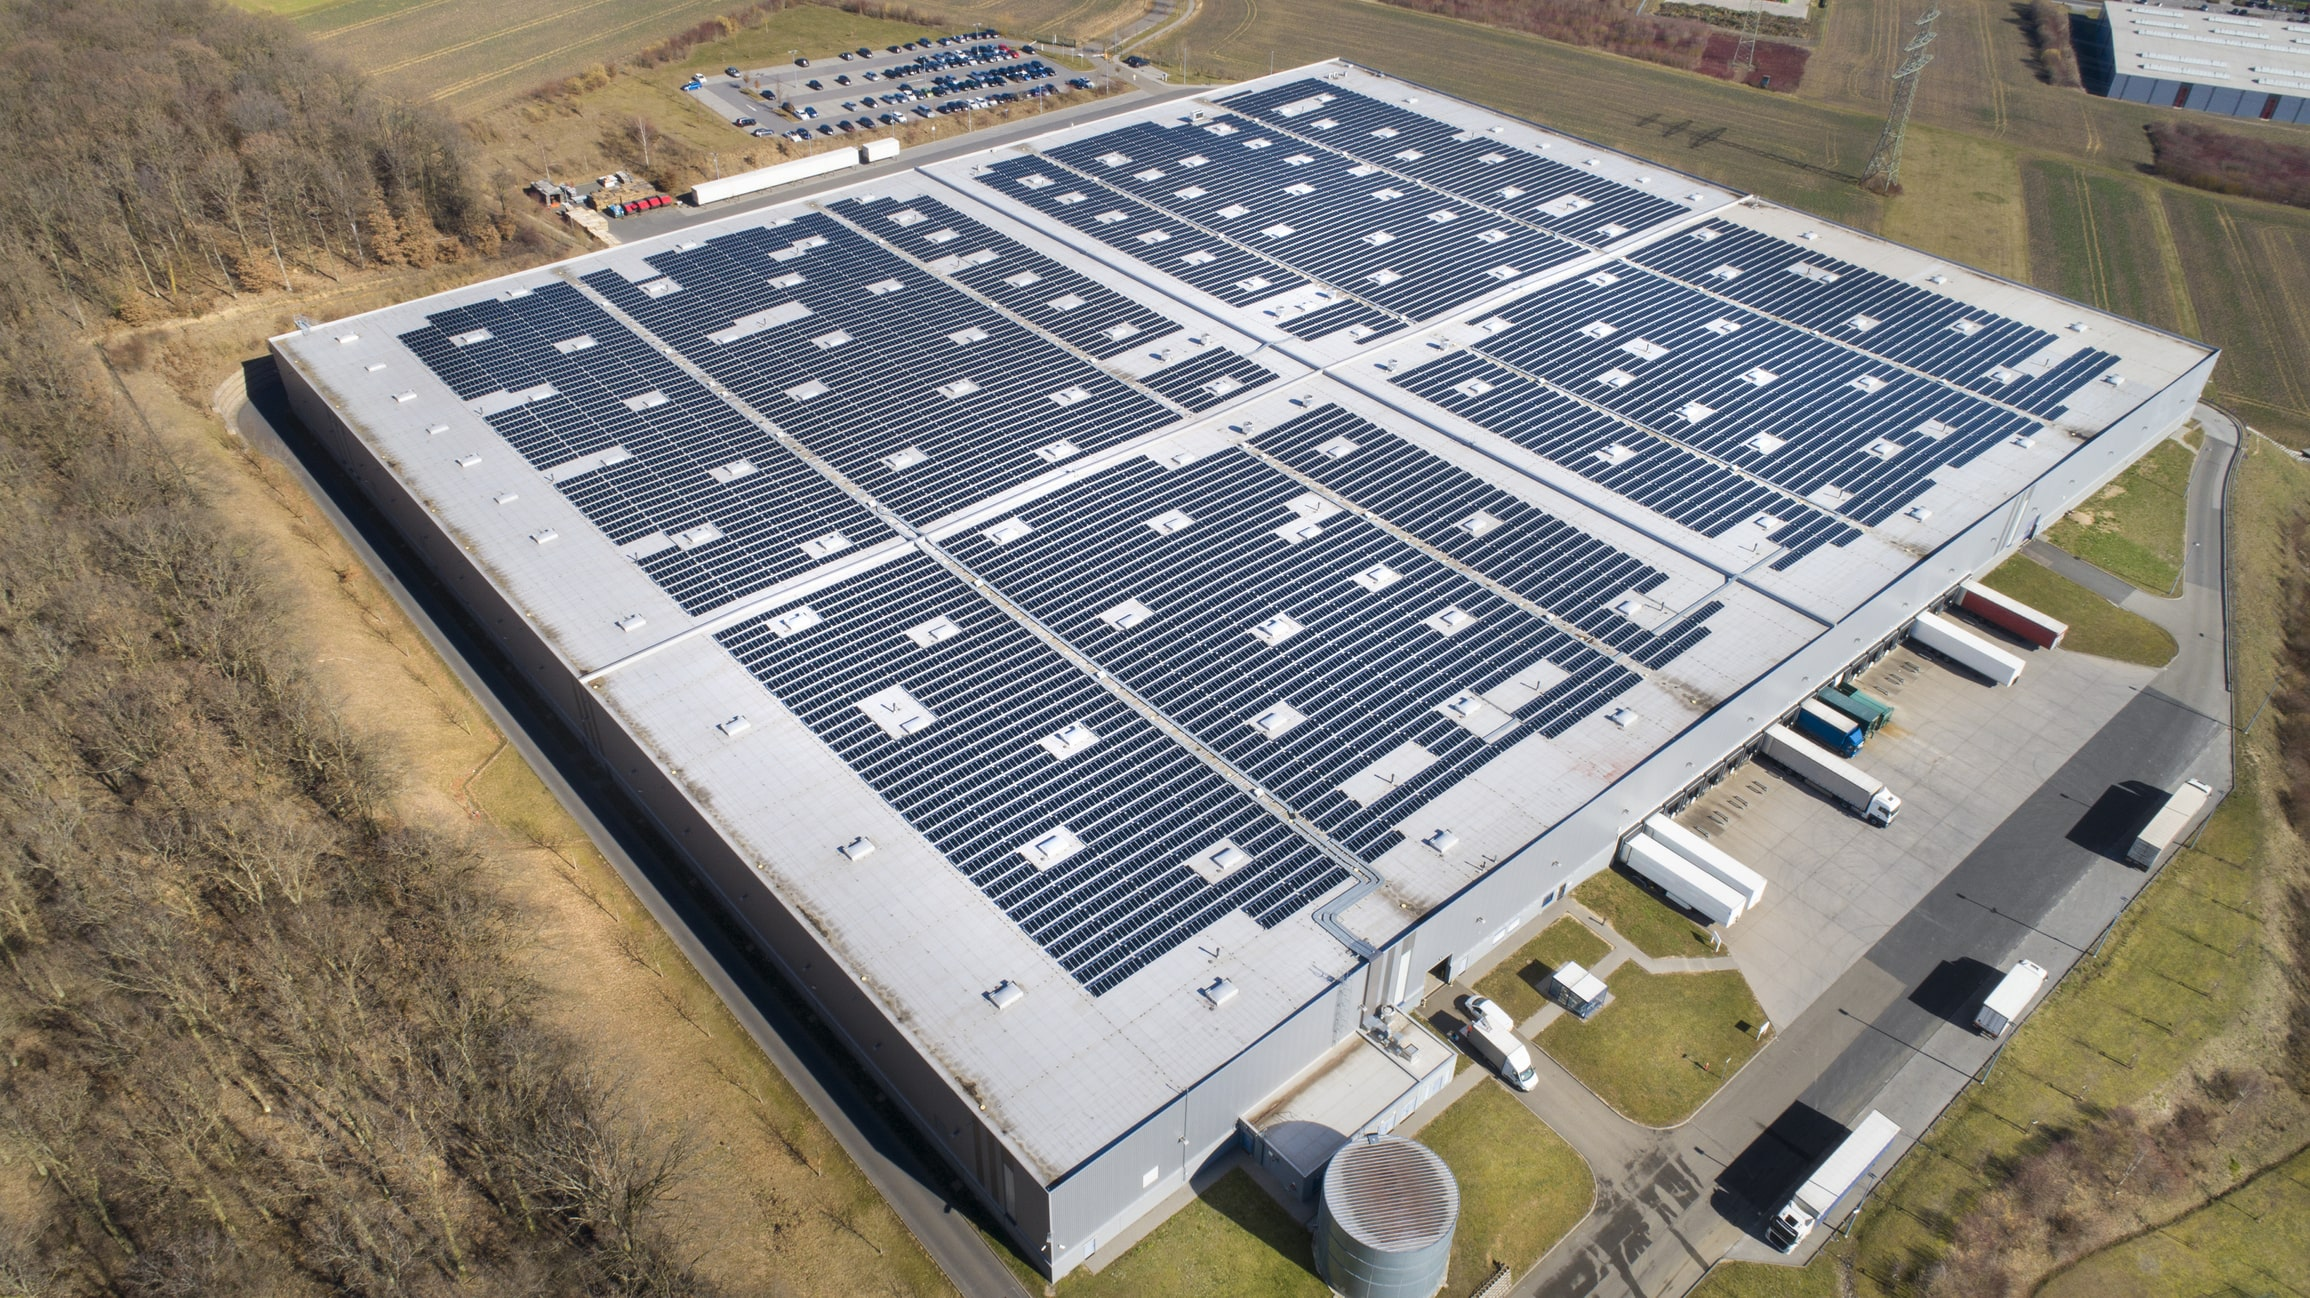 manufacturing plant with solar panels on the roof